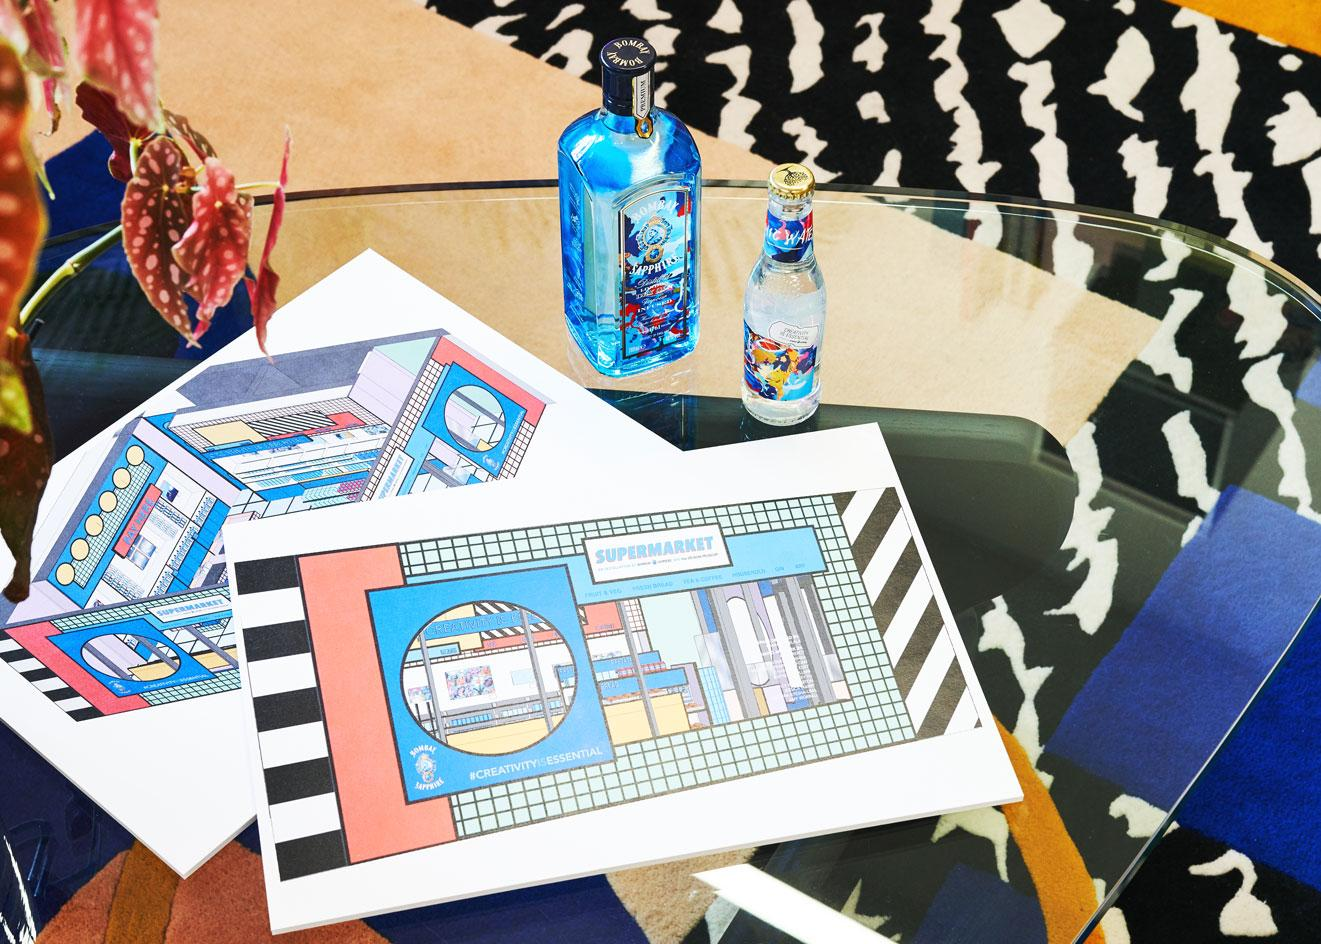 plans for 'Supermarket', an installation designed byCamille Walala at the Design Museum in London